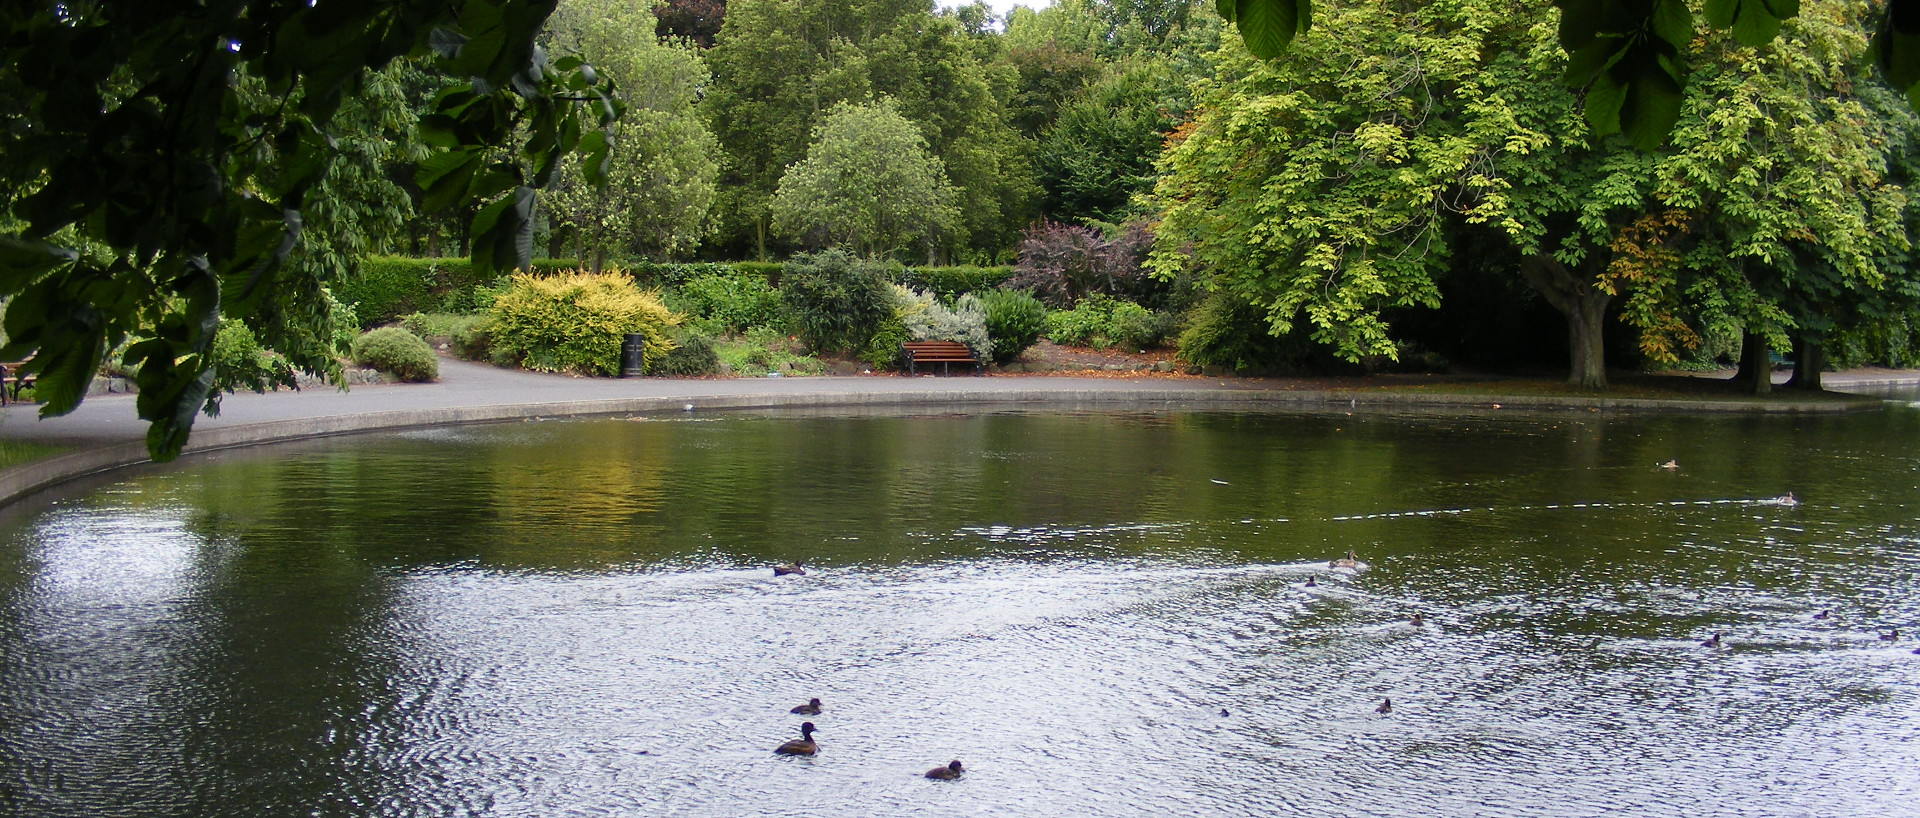 Herbert Park in Ballsbridge Dublin 4